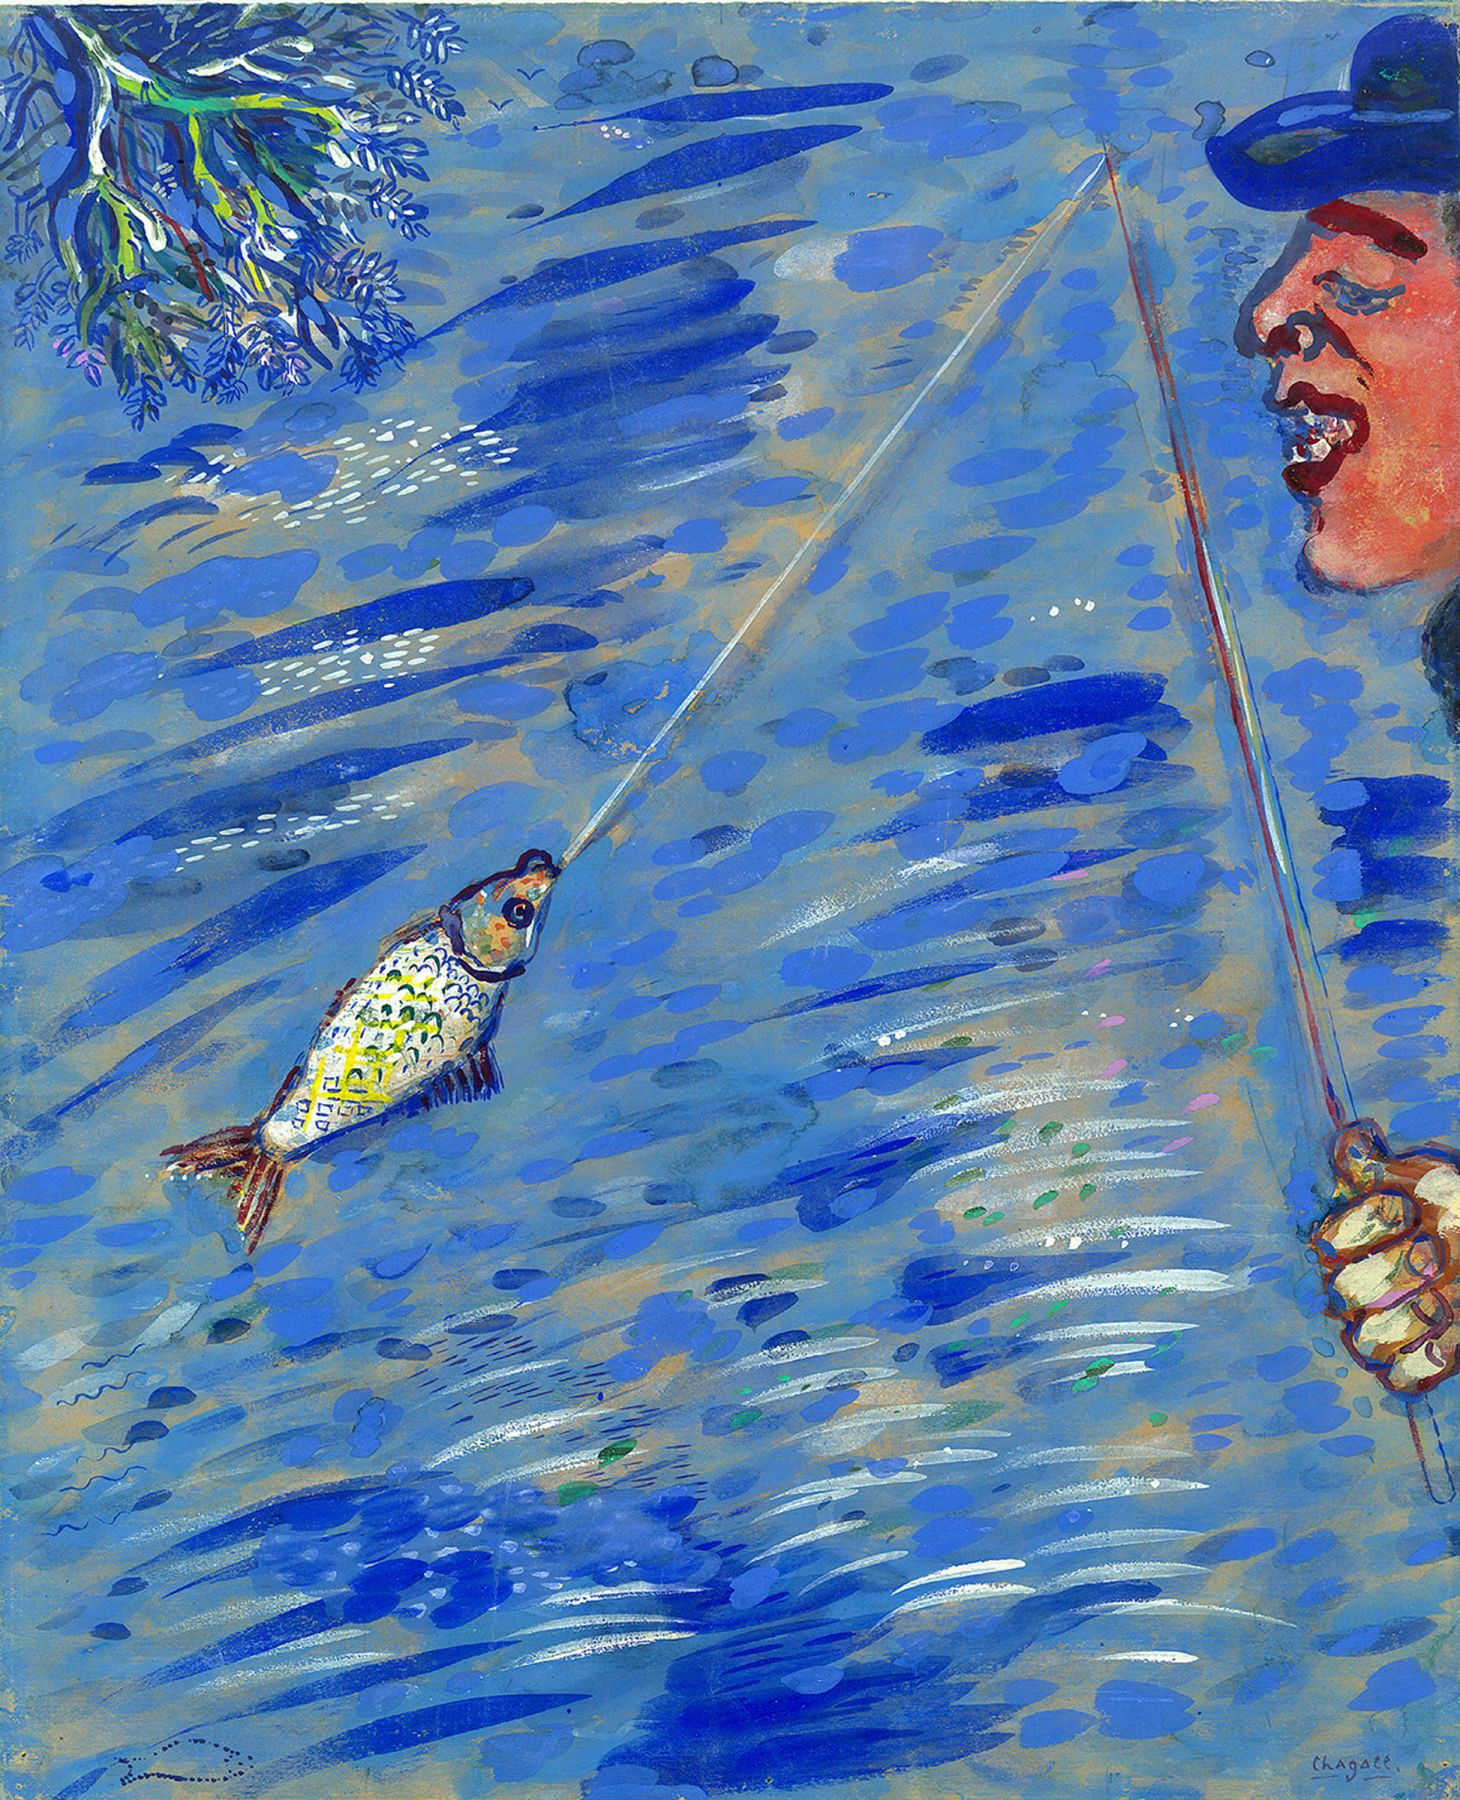 Chagall - The Little Fish and the Fisherman